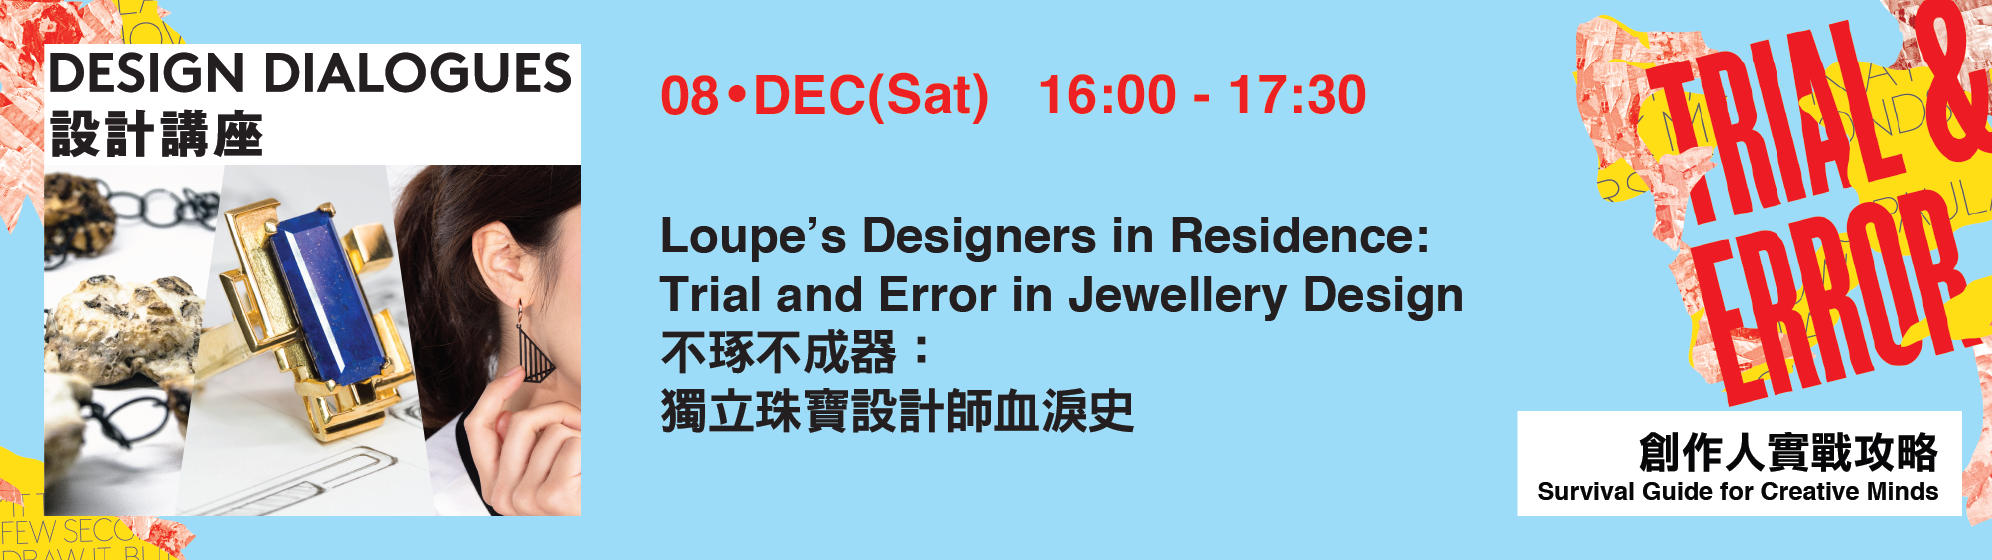 不琢不成器:獨立珠寶設計師血淚史 | Loupe's Designers in Residence: Trial and Error in Jewellery Design